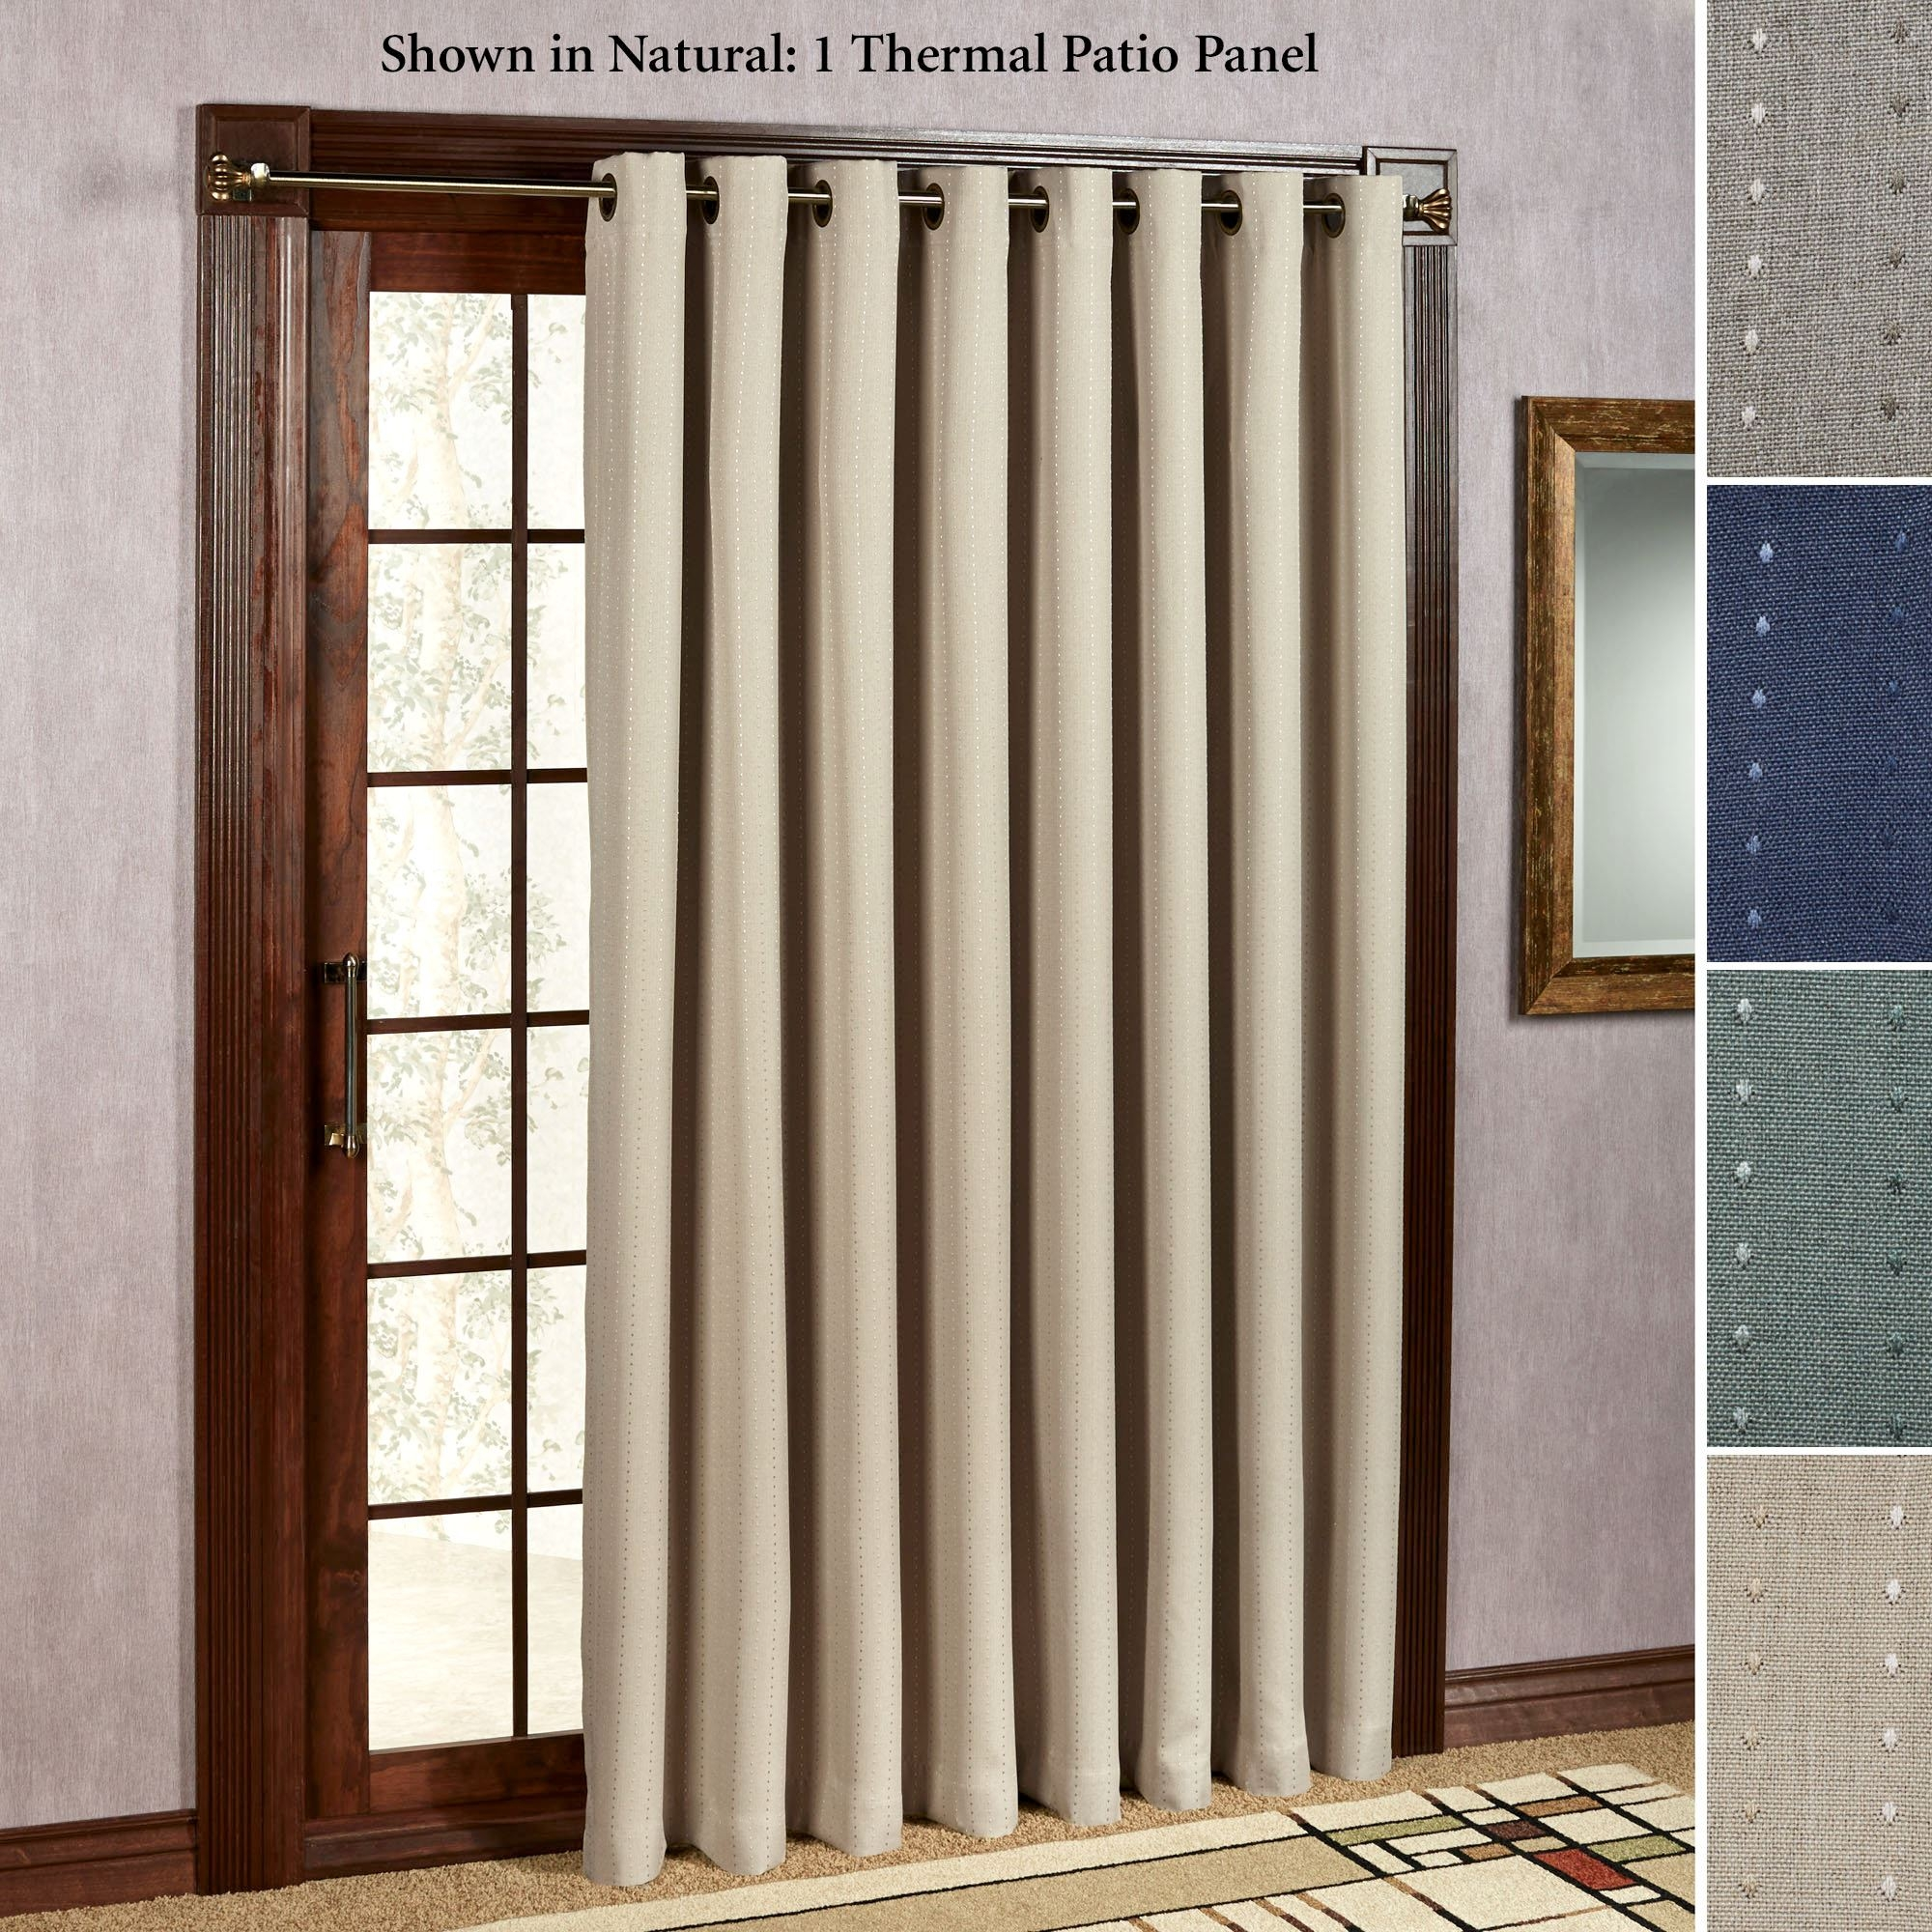 Best Curtain For Sliding Glass Doorslider door curtains sliding door grommet curtains for sliding